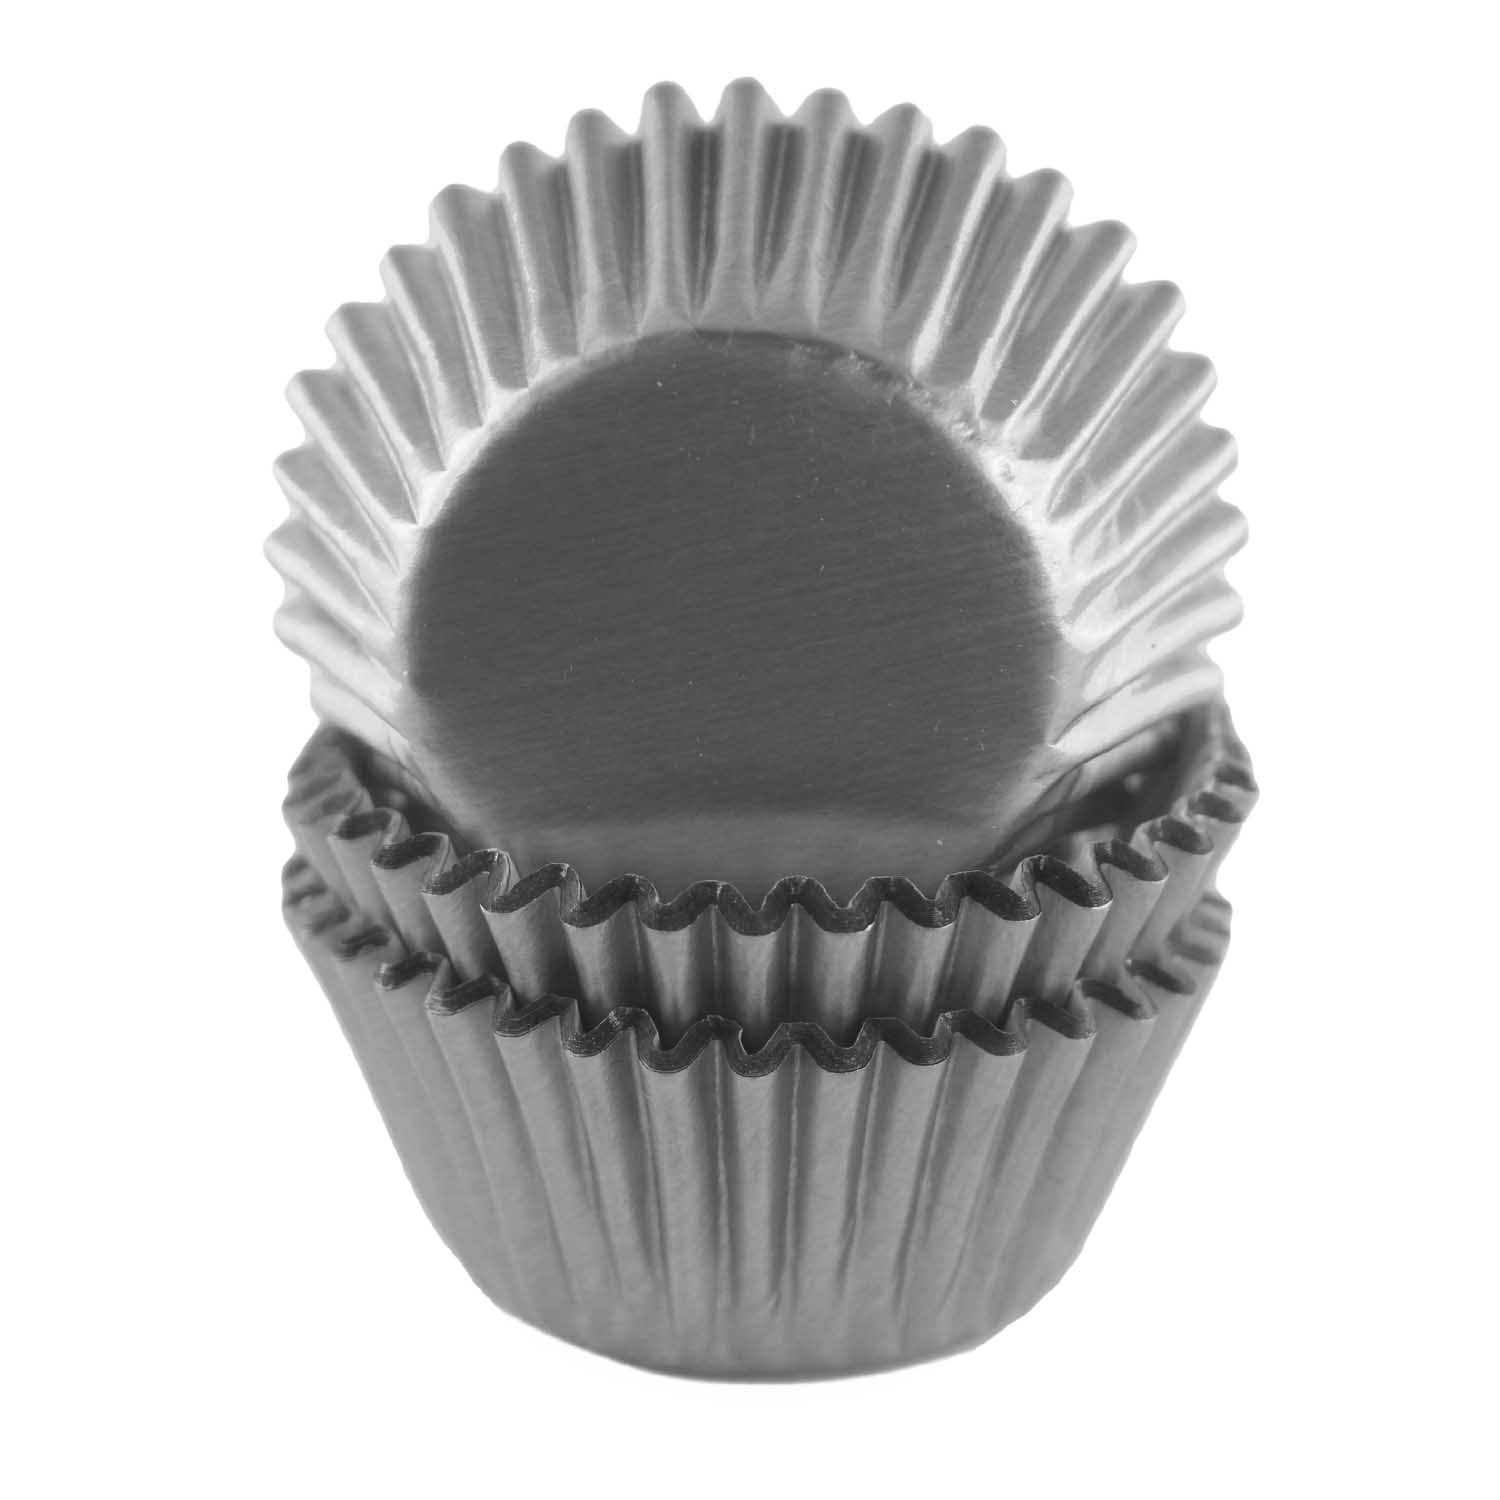 Grey Foil Mini Baking Cups